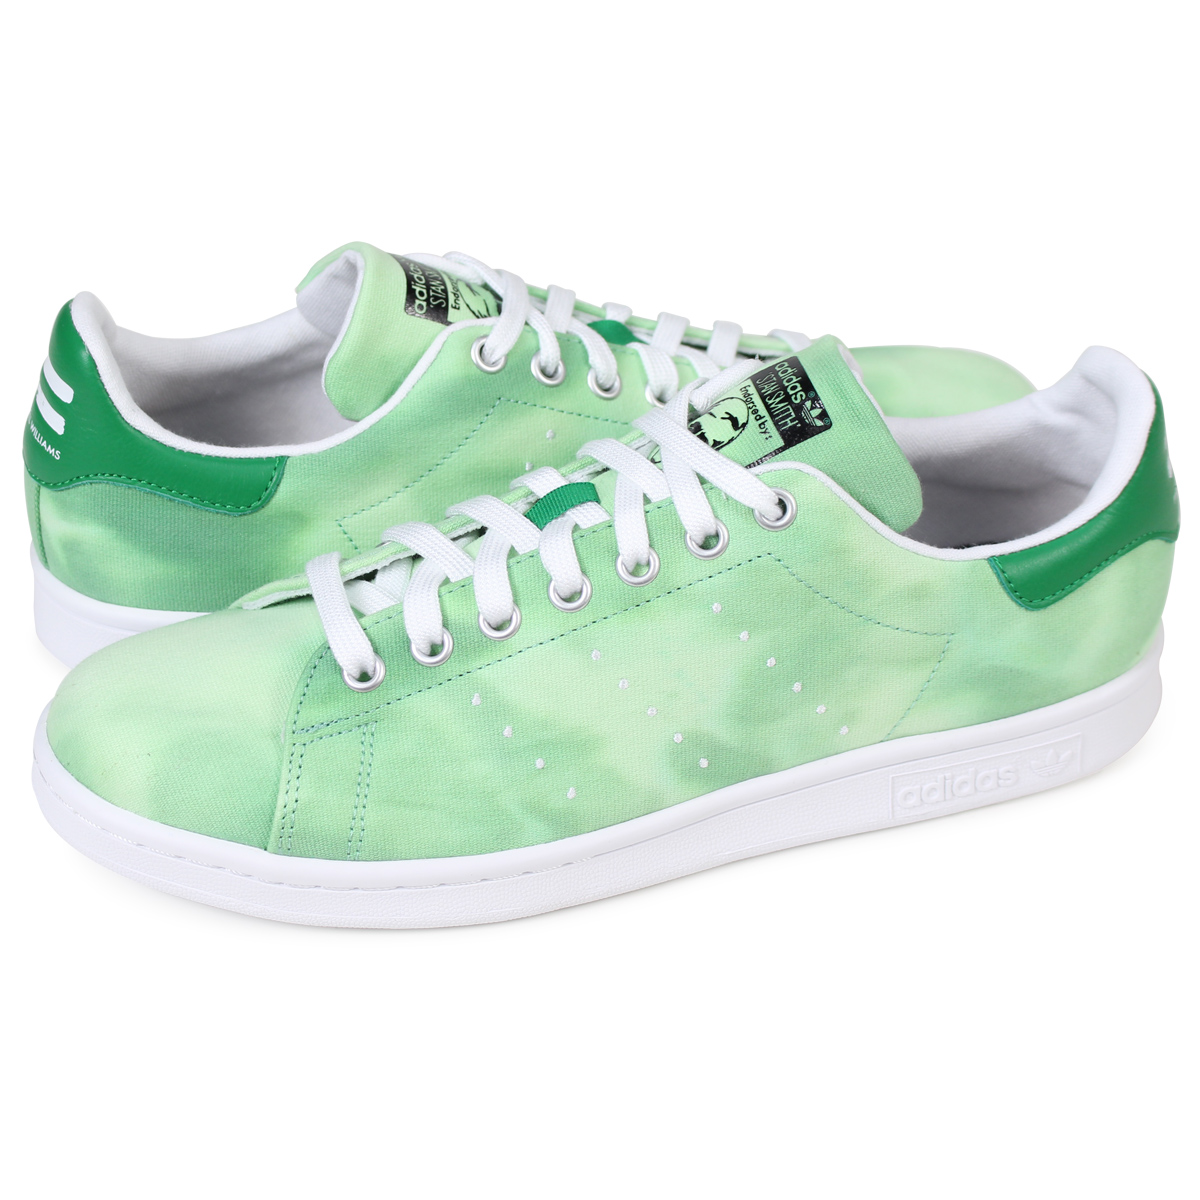 f2ddcdda6be7e adidas Originals PW HU HOLI STAN SMITH Adidas Stan Smith sneakers Farrell  Williams men collaboration AC7043 green originals  load planned Shinnyu  load in ...